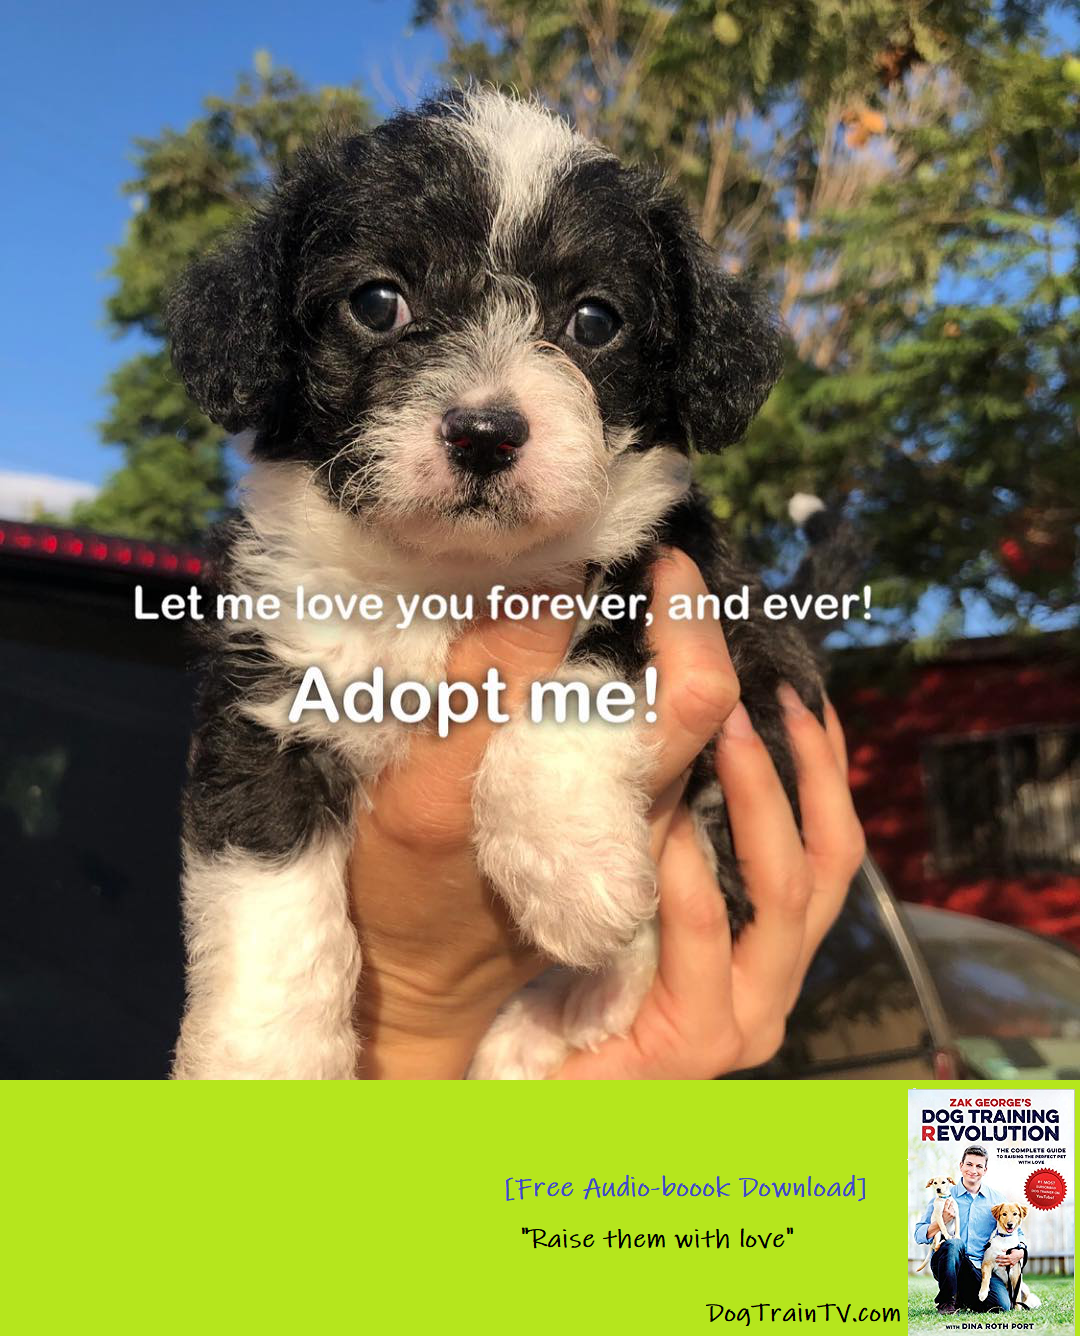 What S Included In Every Adoption 1 30 Days Of Food 2 The 1st Month Of Flea Tick And Deworming Medication 3 Toys Treats Dog Training Dogs Dog Trainer